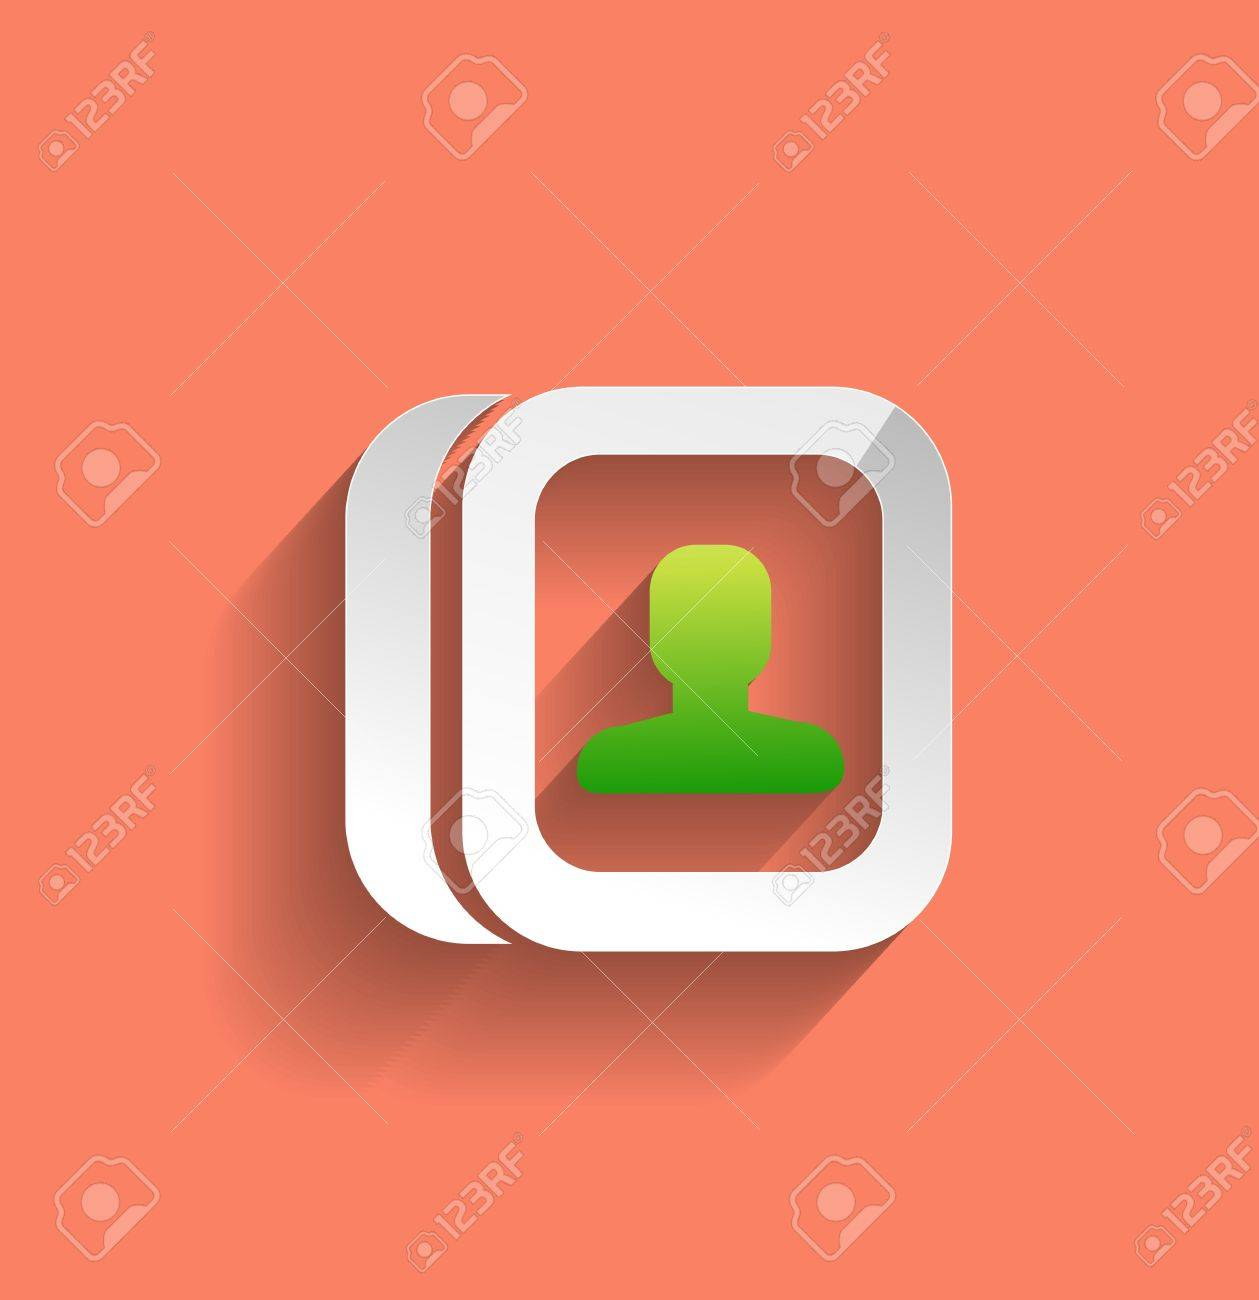 contacts modern flat icon Stock Vector - 21220427